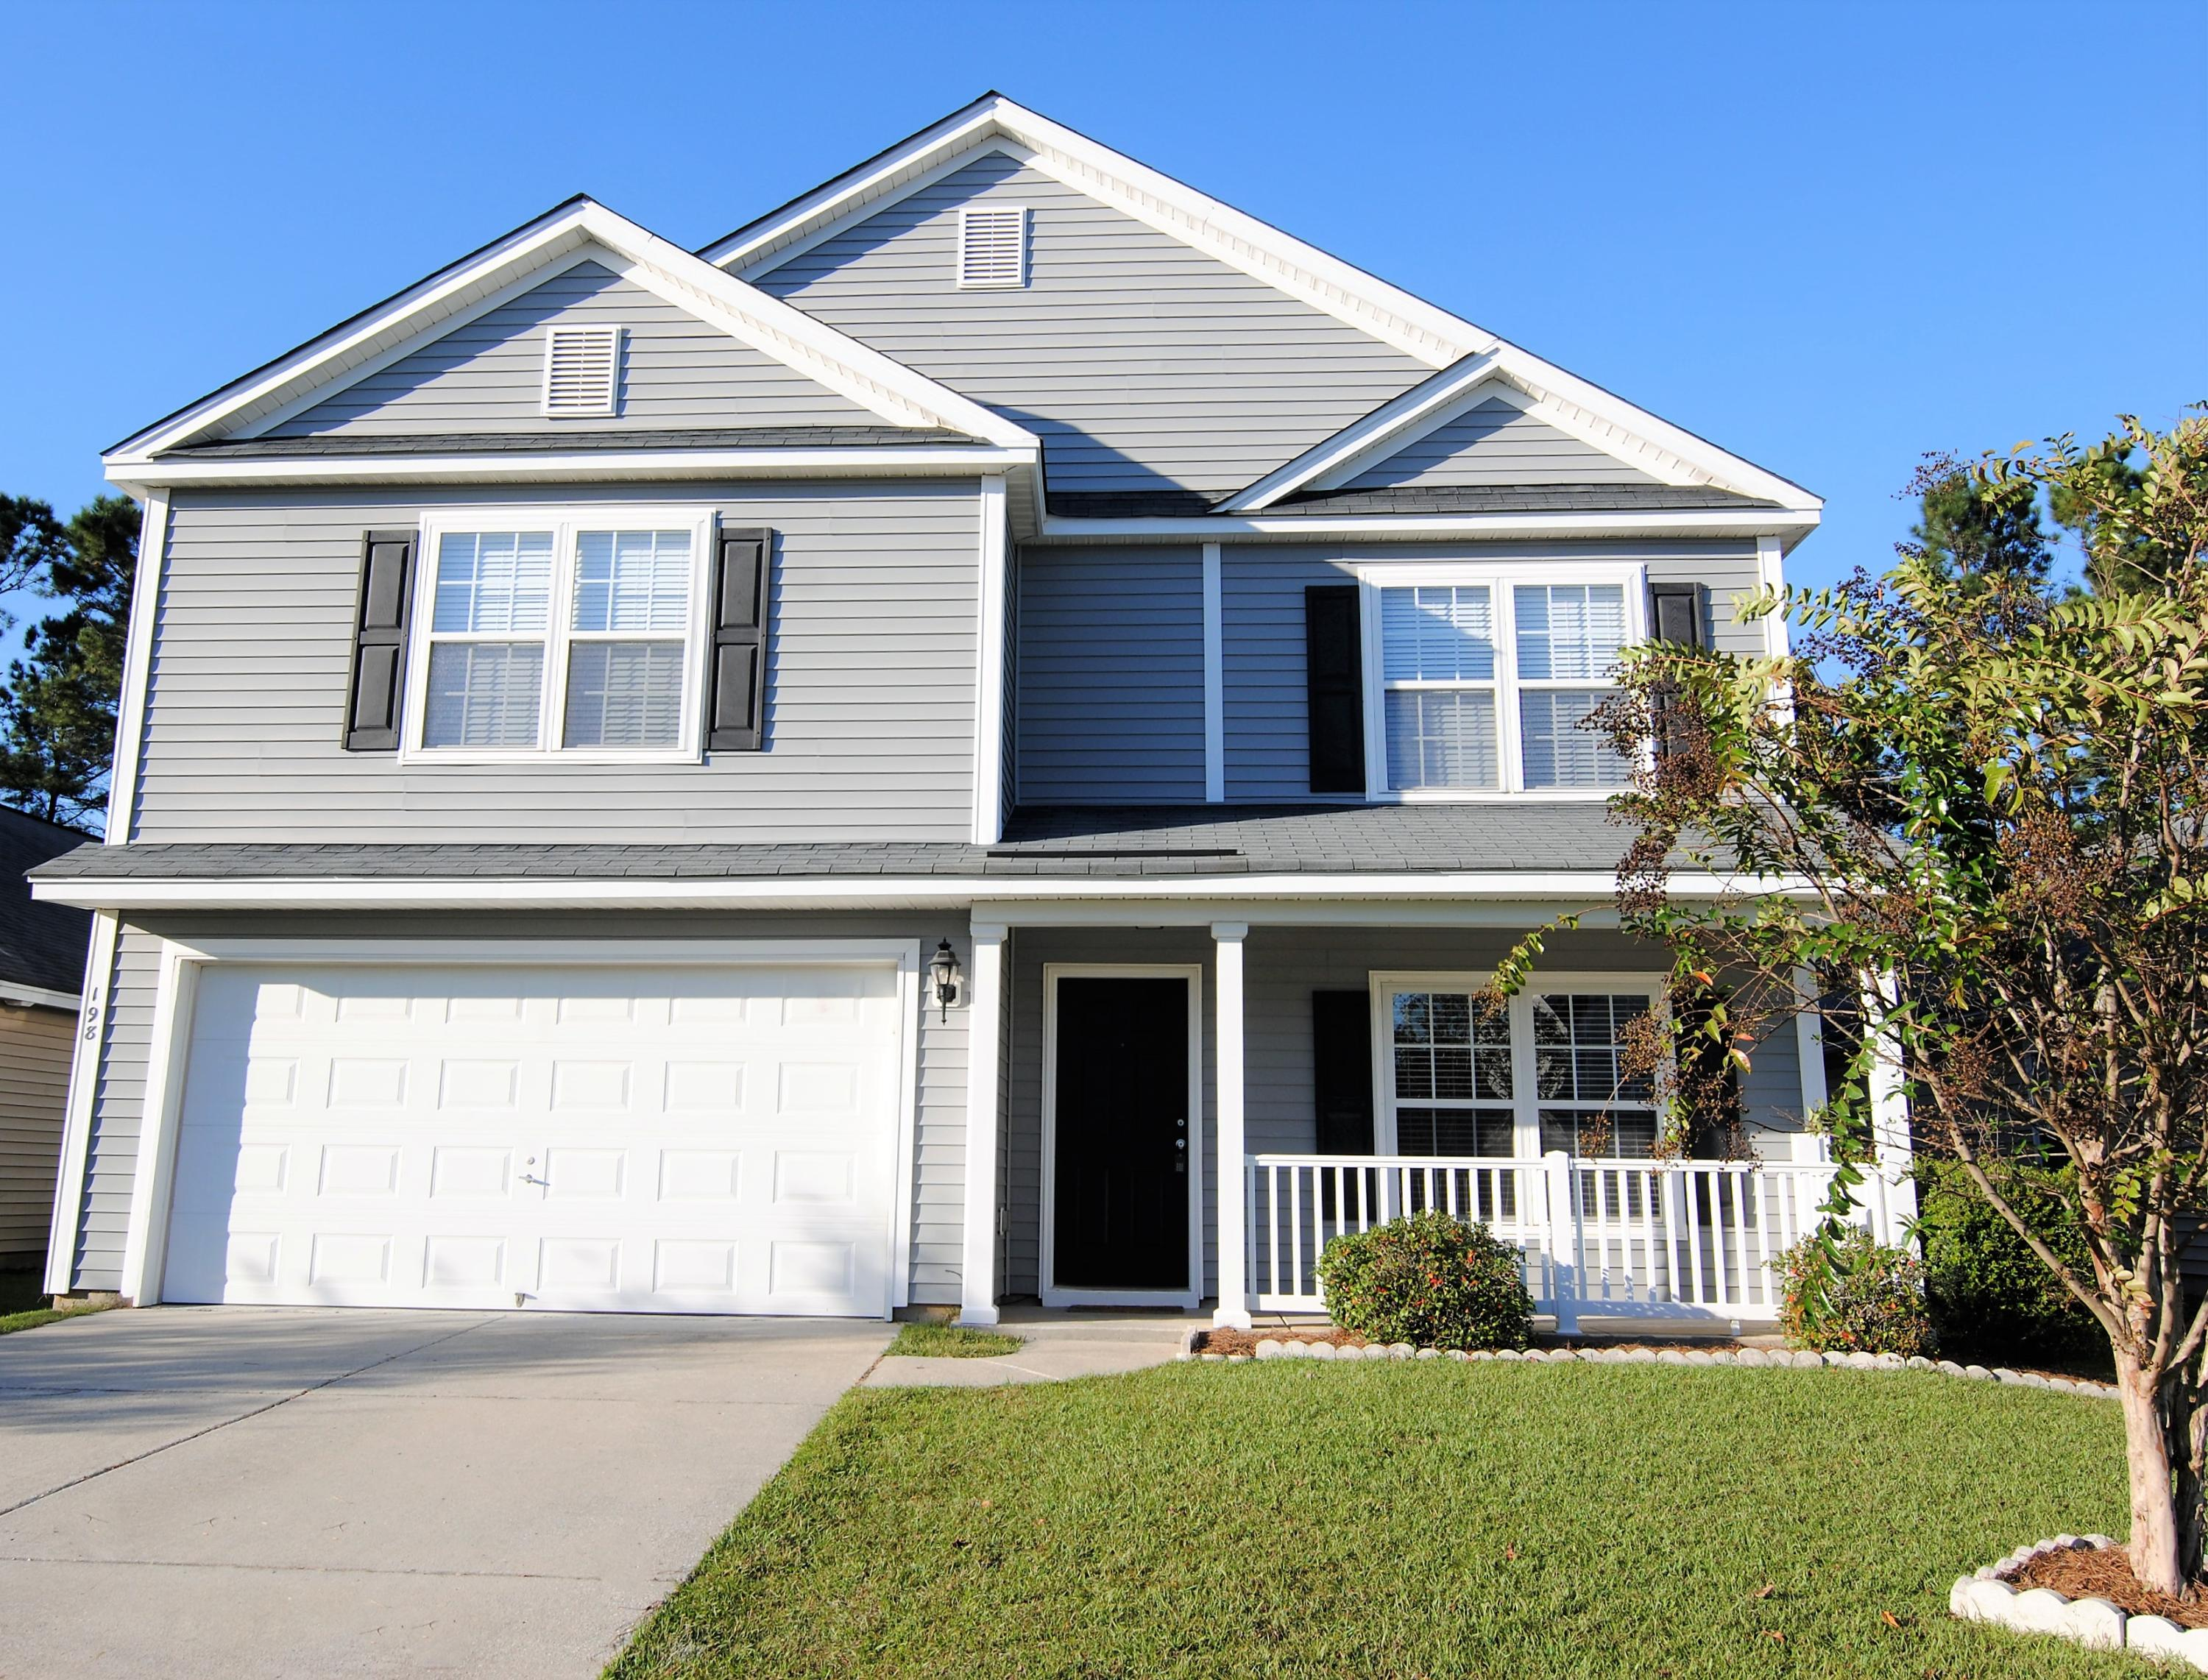 Photo of 198 Emerald Isle Dr, Moncks Corner, SC 29461